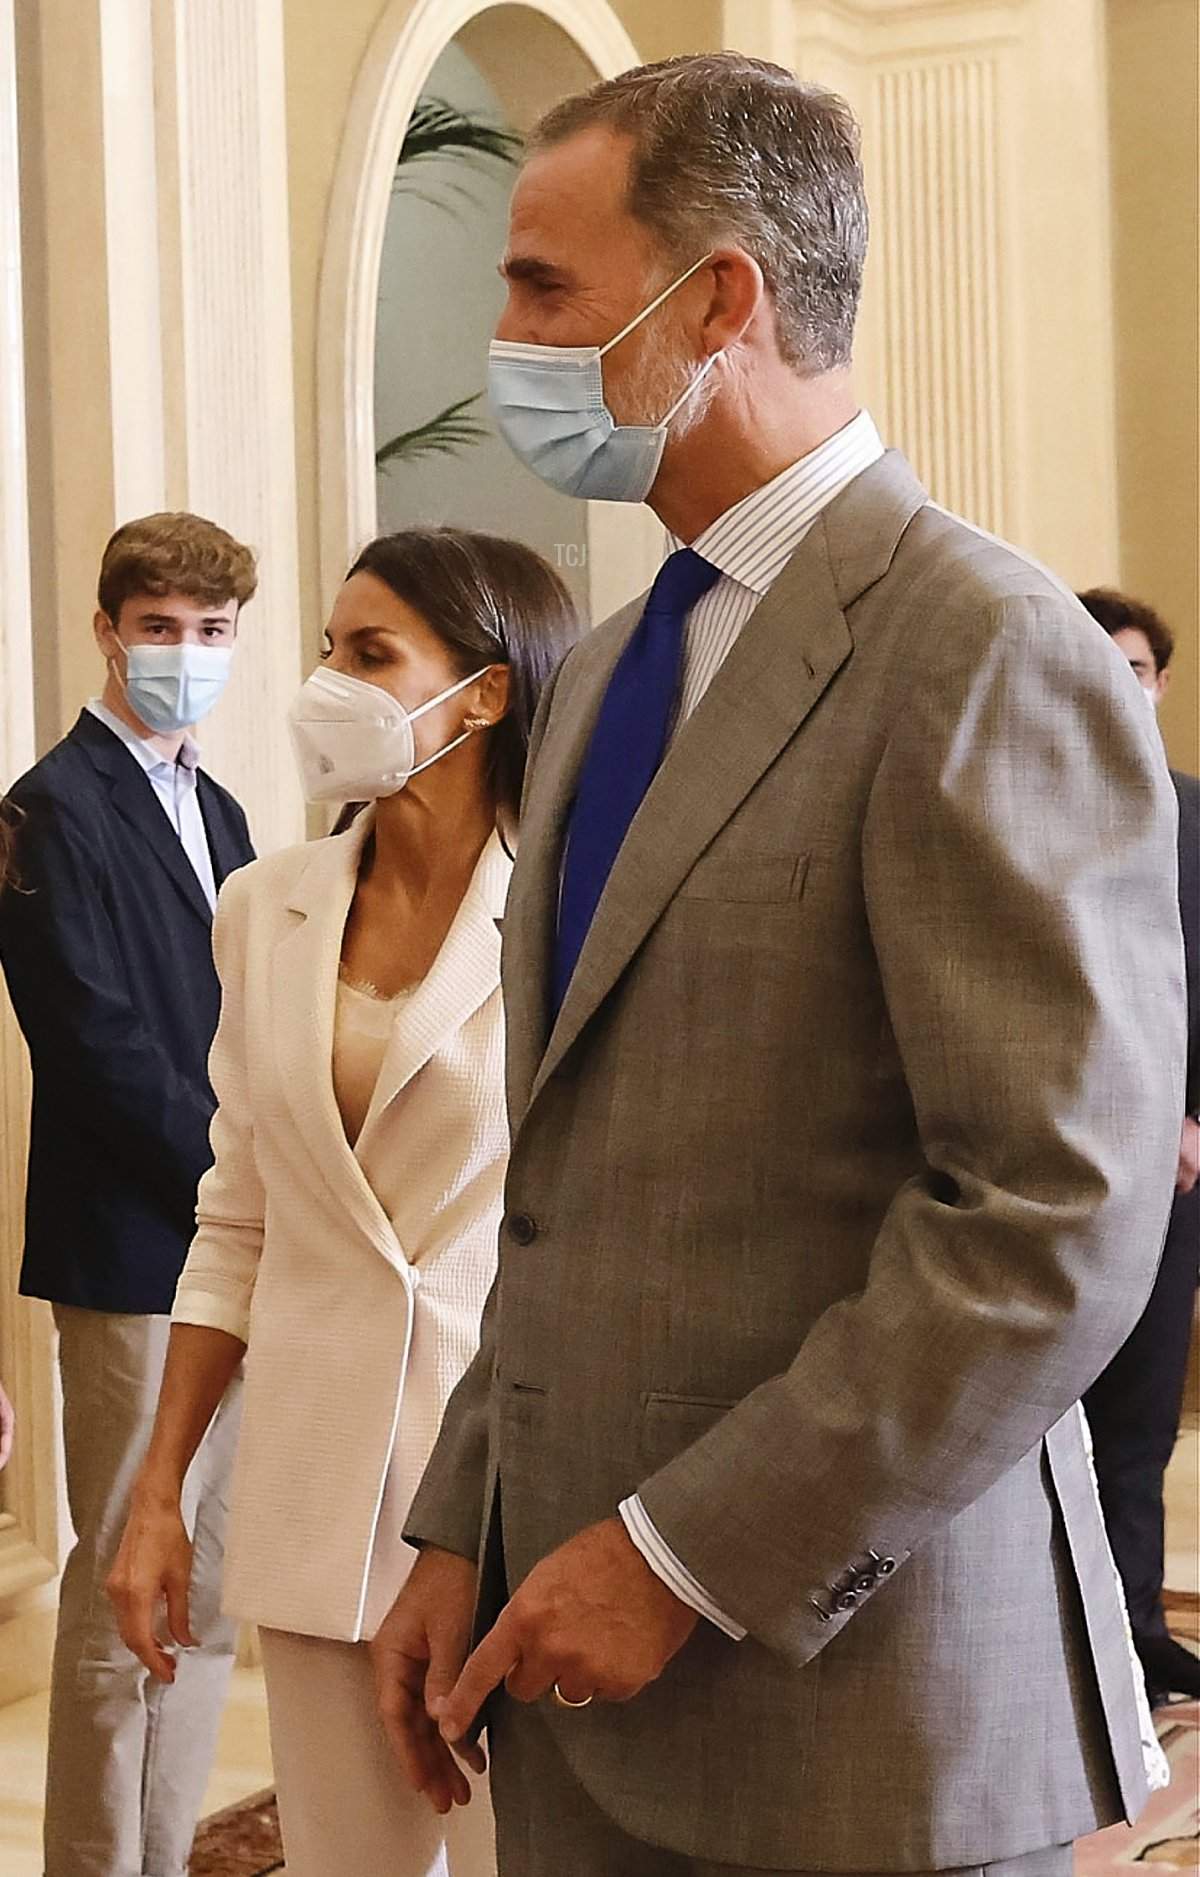 In this handout image provided by the Royal Household, King Felipe VI of Spain (R), Queen Letizia of Spain (2R) and Crown Princess Leonor of Spain (L) receive in audience the members of the United World Colleges (UWC) Spain at Royal Palace on July 13, 2021 in Madrid, Spain